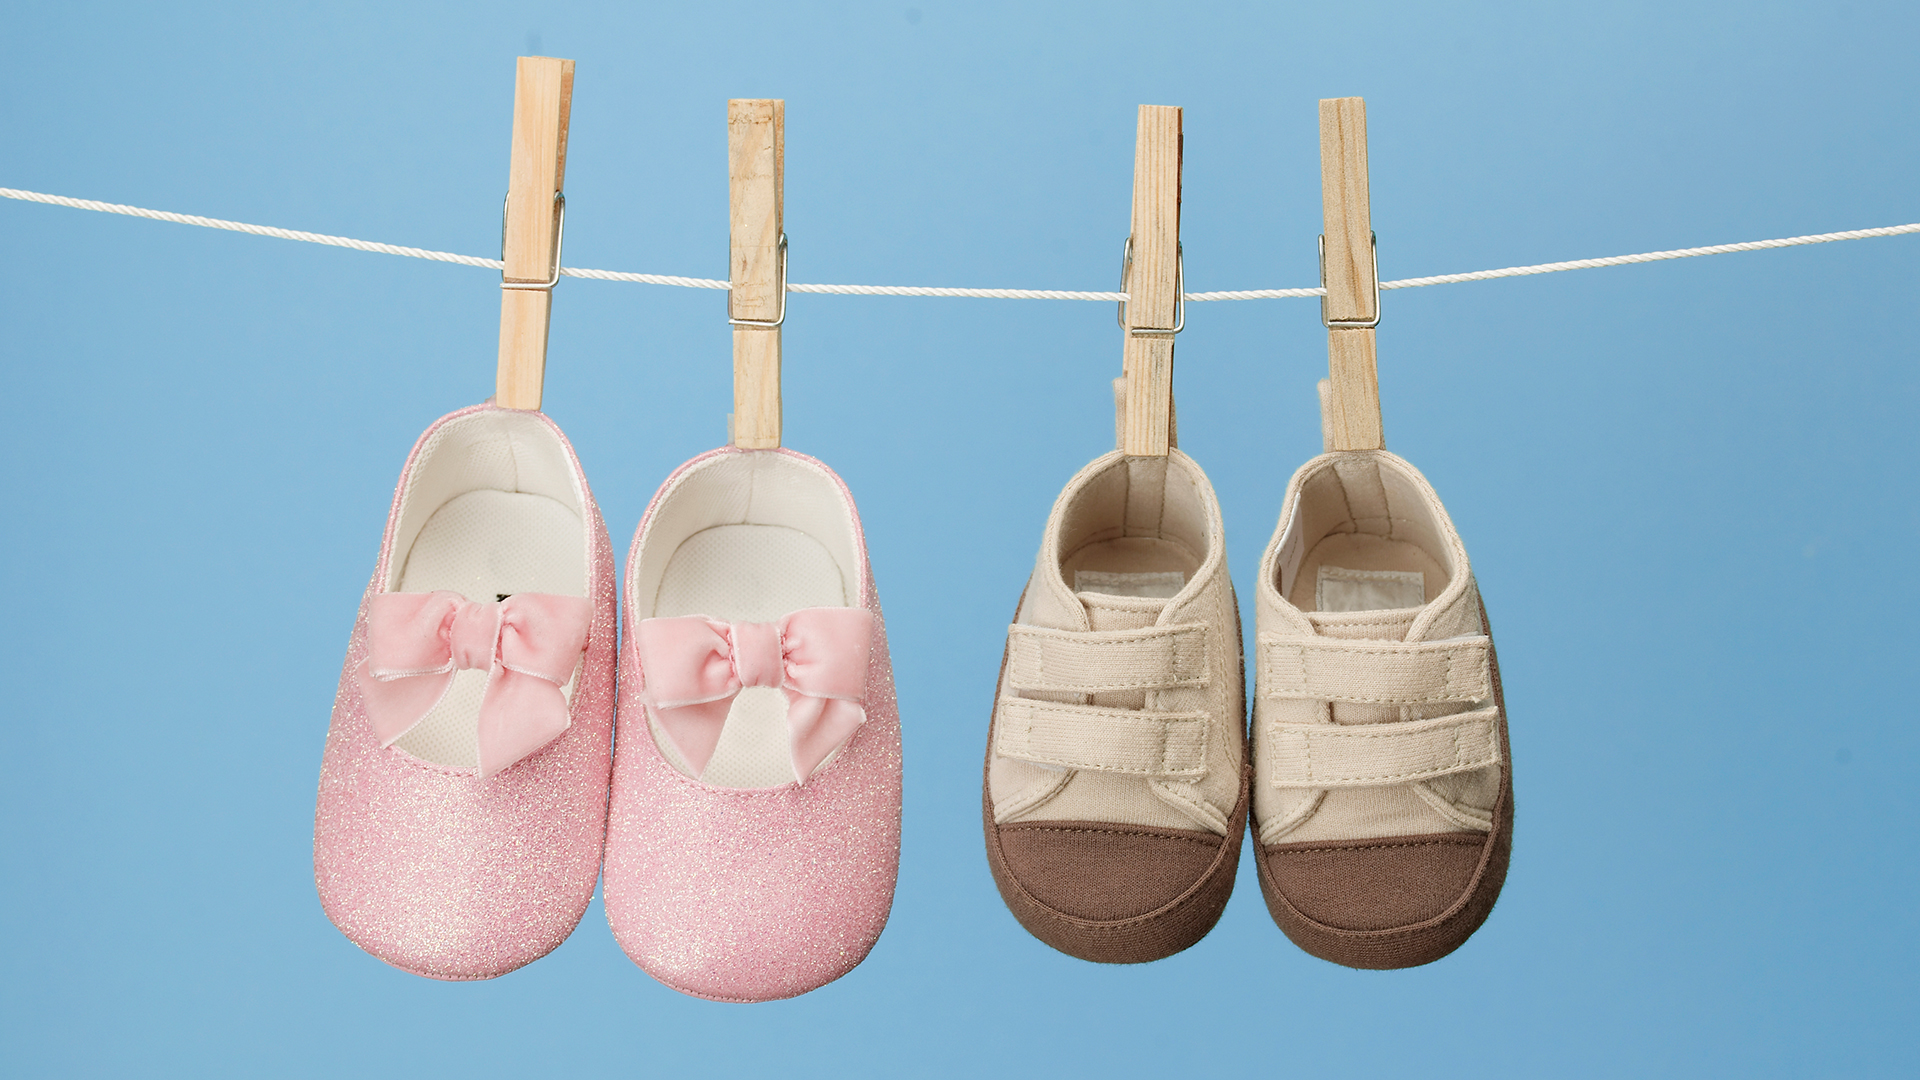 Baby shoes hanging on clothes line | PregnancyAndBaby.com